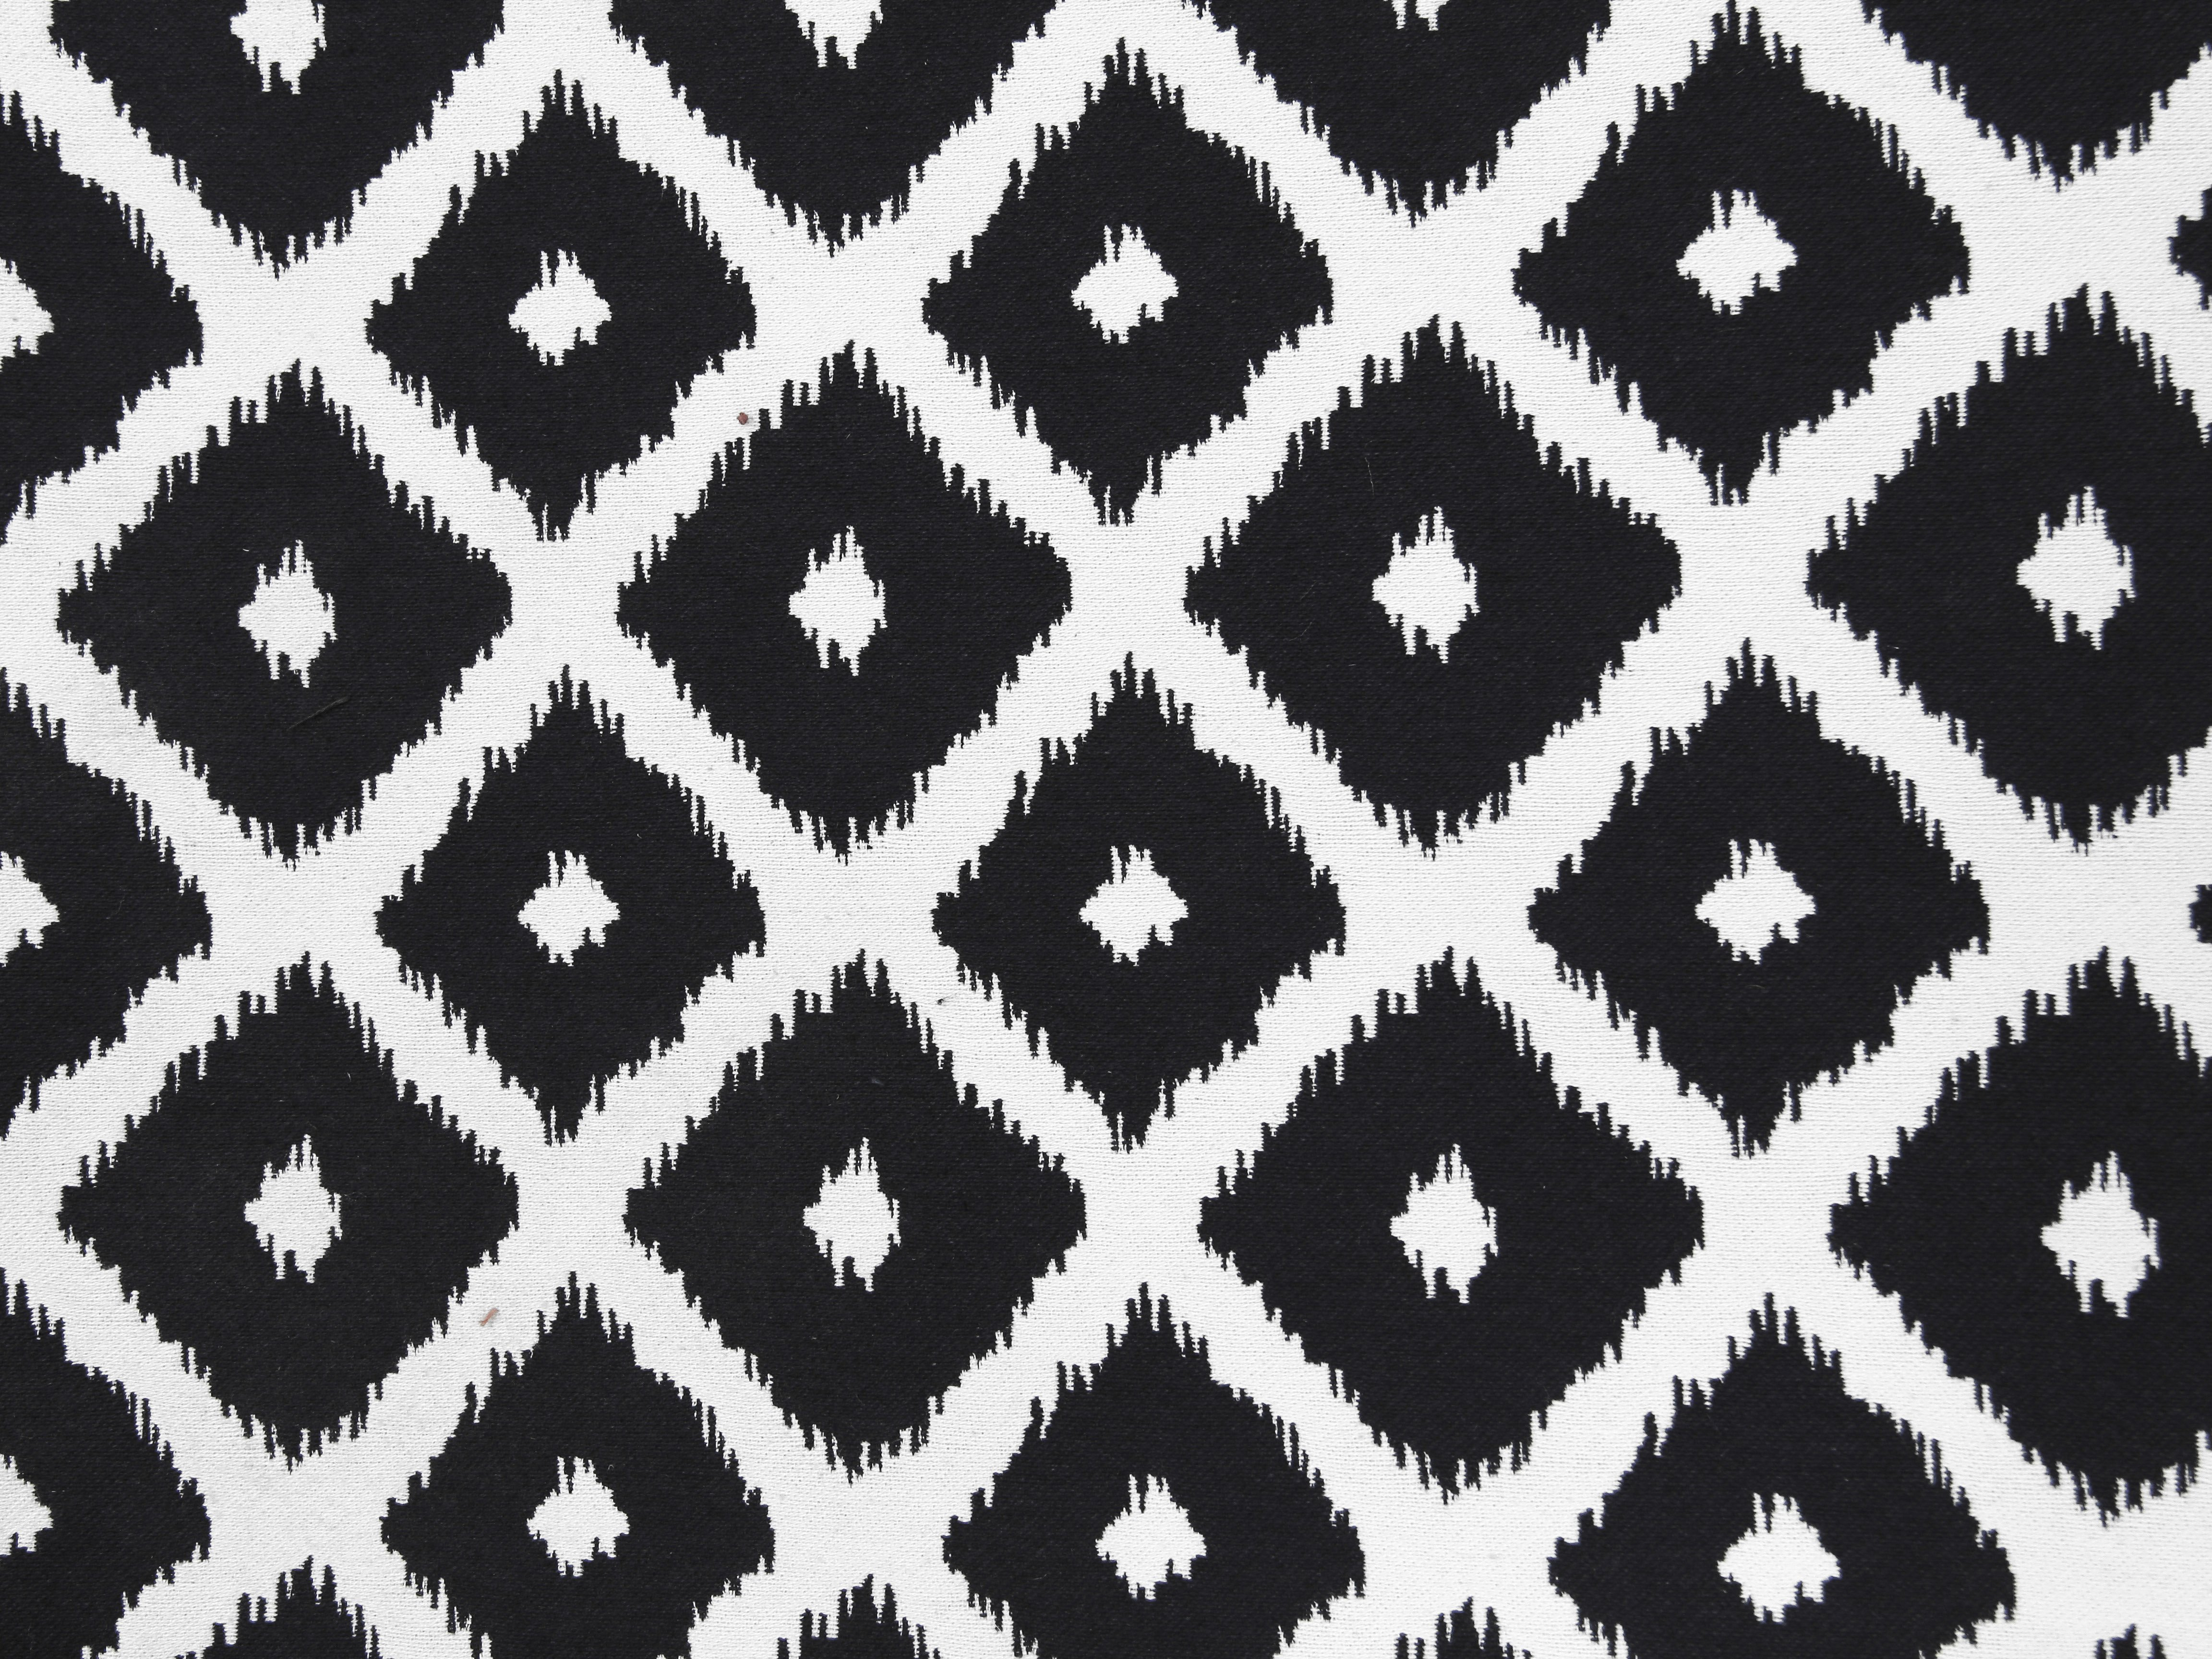 Black and White Pattern Awesome Black and White Pattern Backgrounds